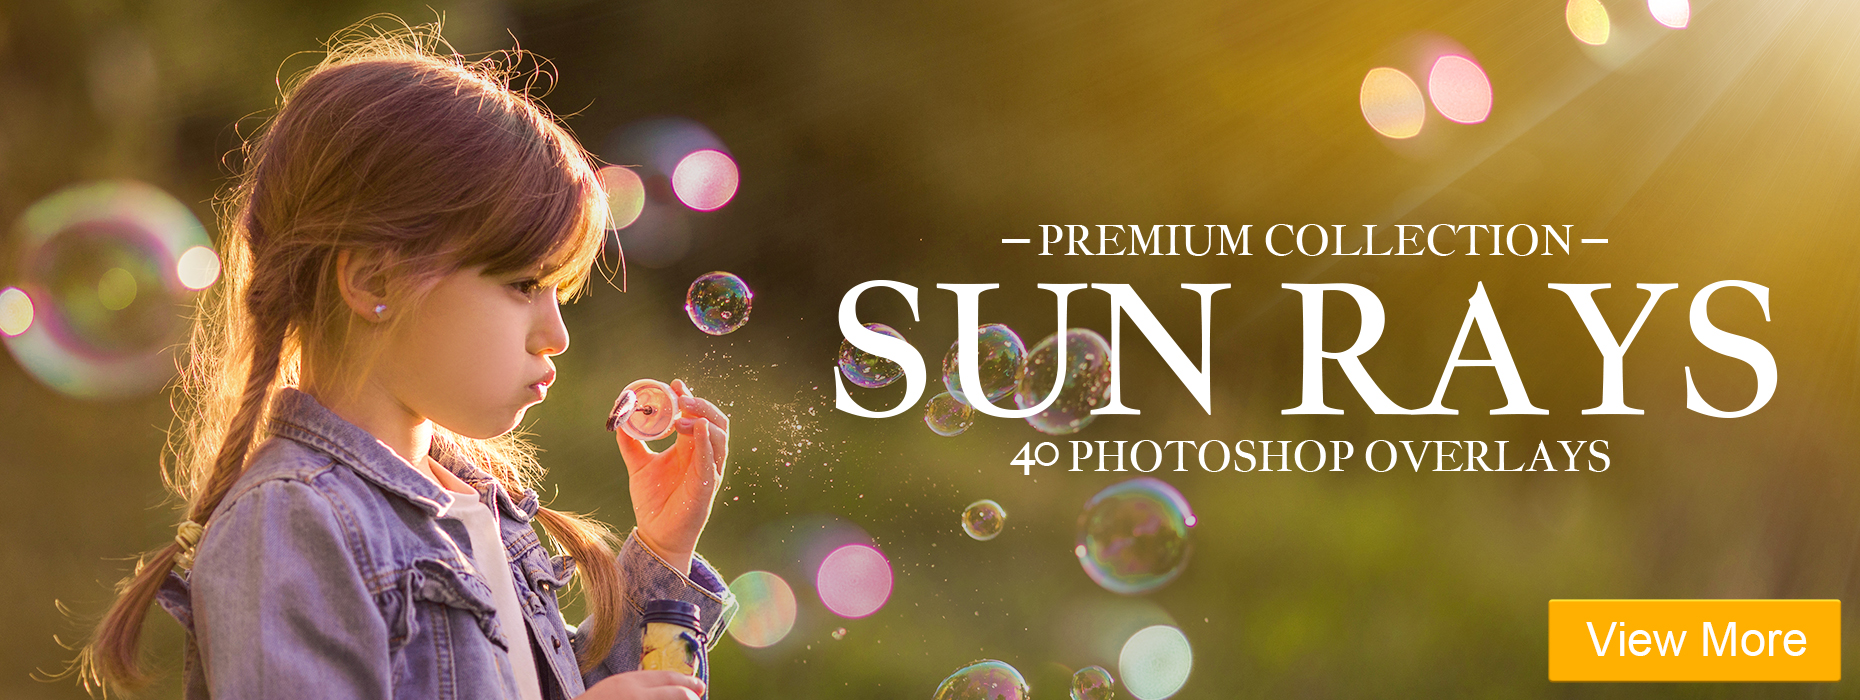 free photoshop sky overlays sun rays photoshop overlays collection banner girl